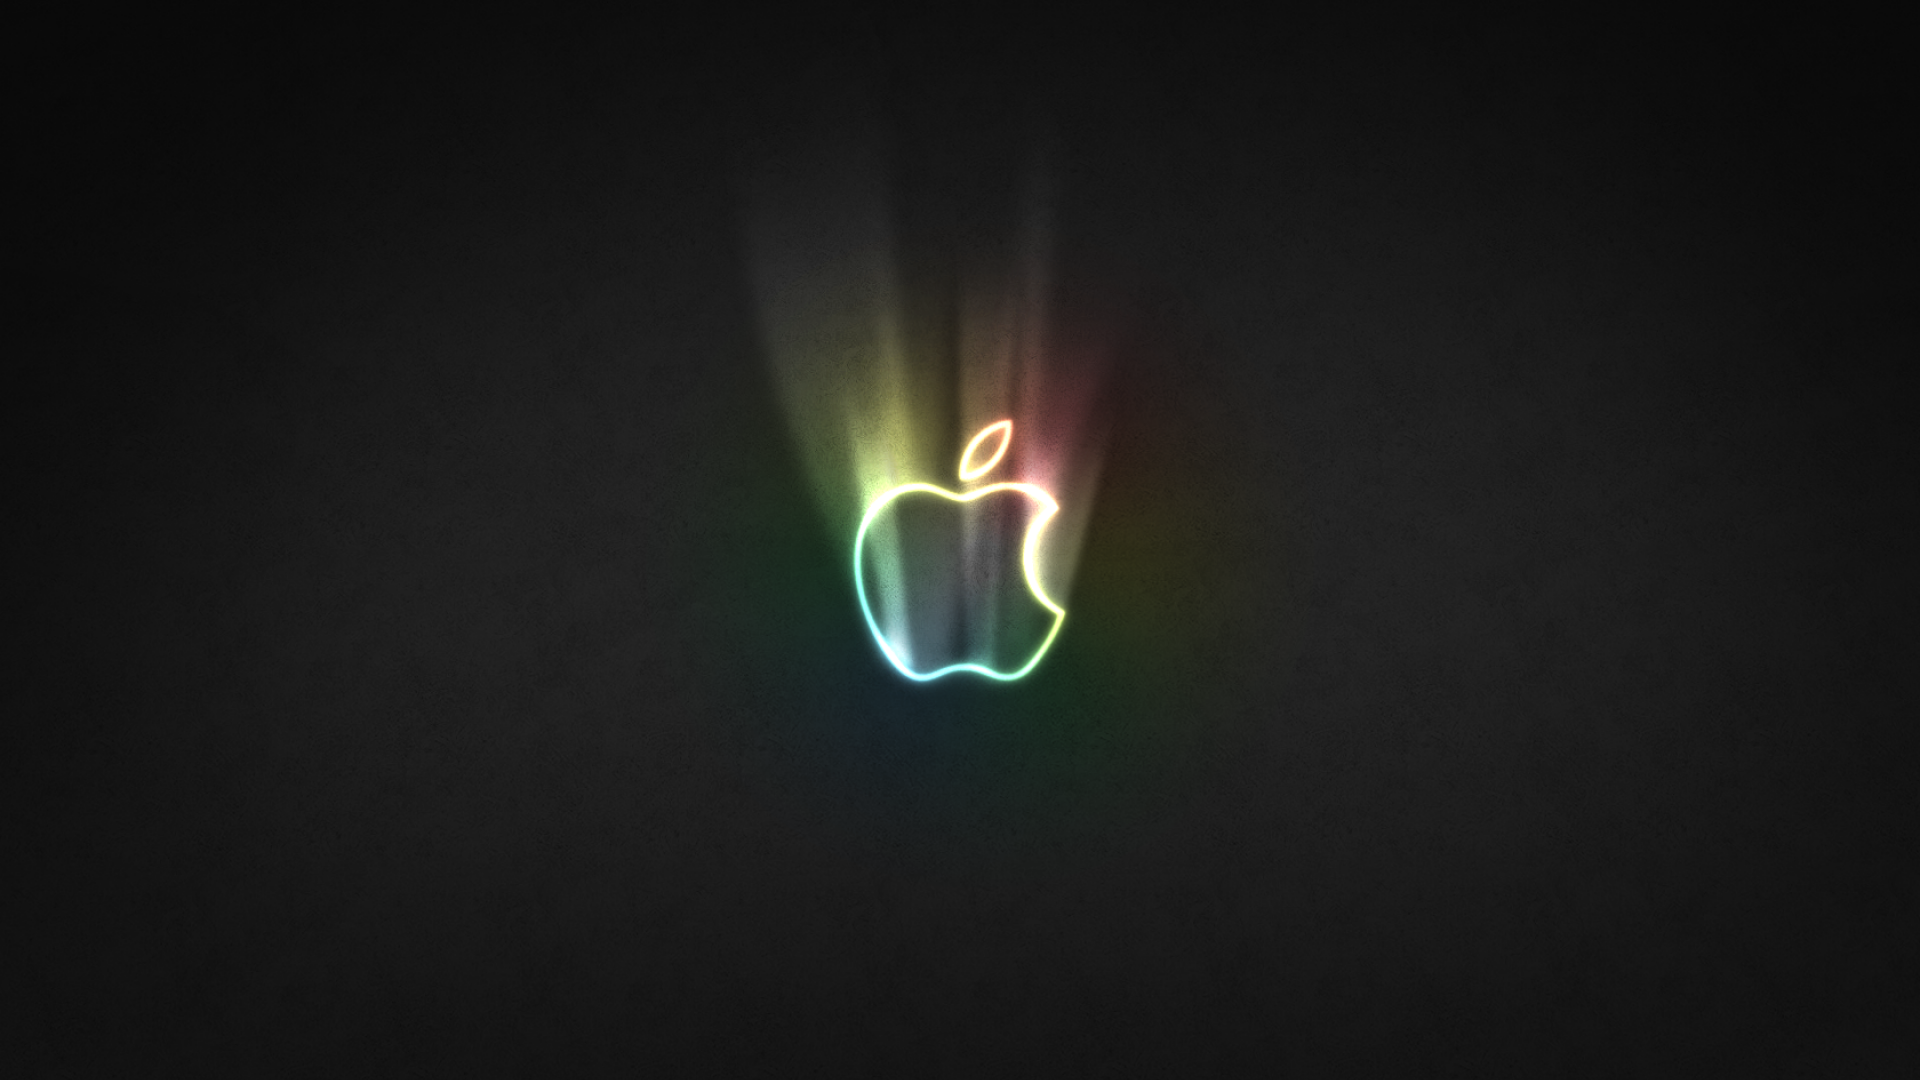 Download apple glowing logo wallpaper HD wallpaper 1920x1080